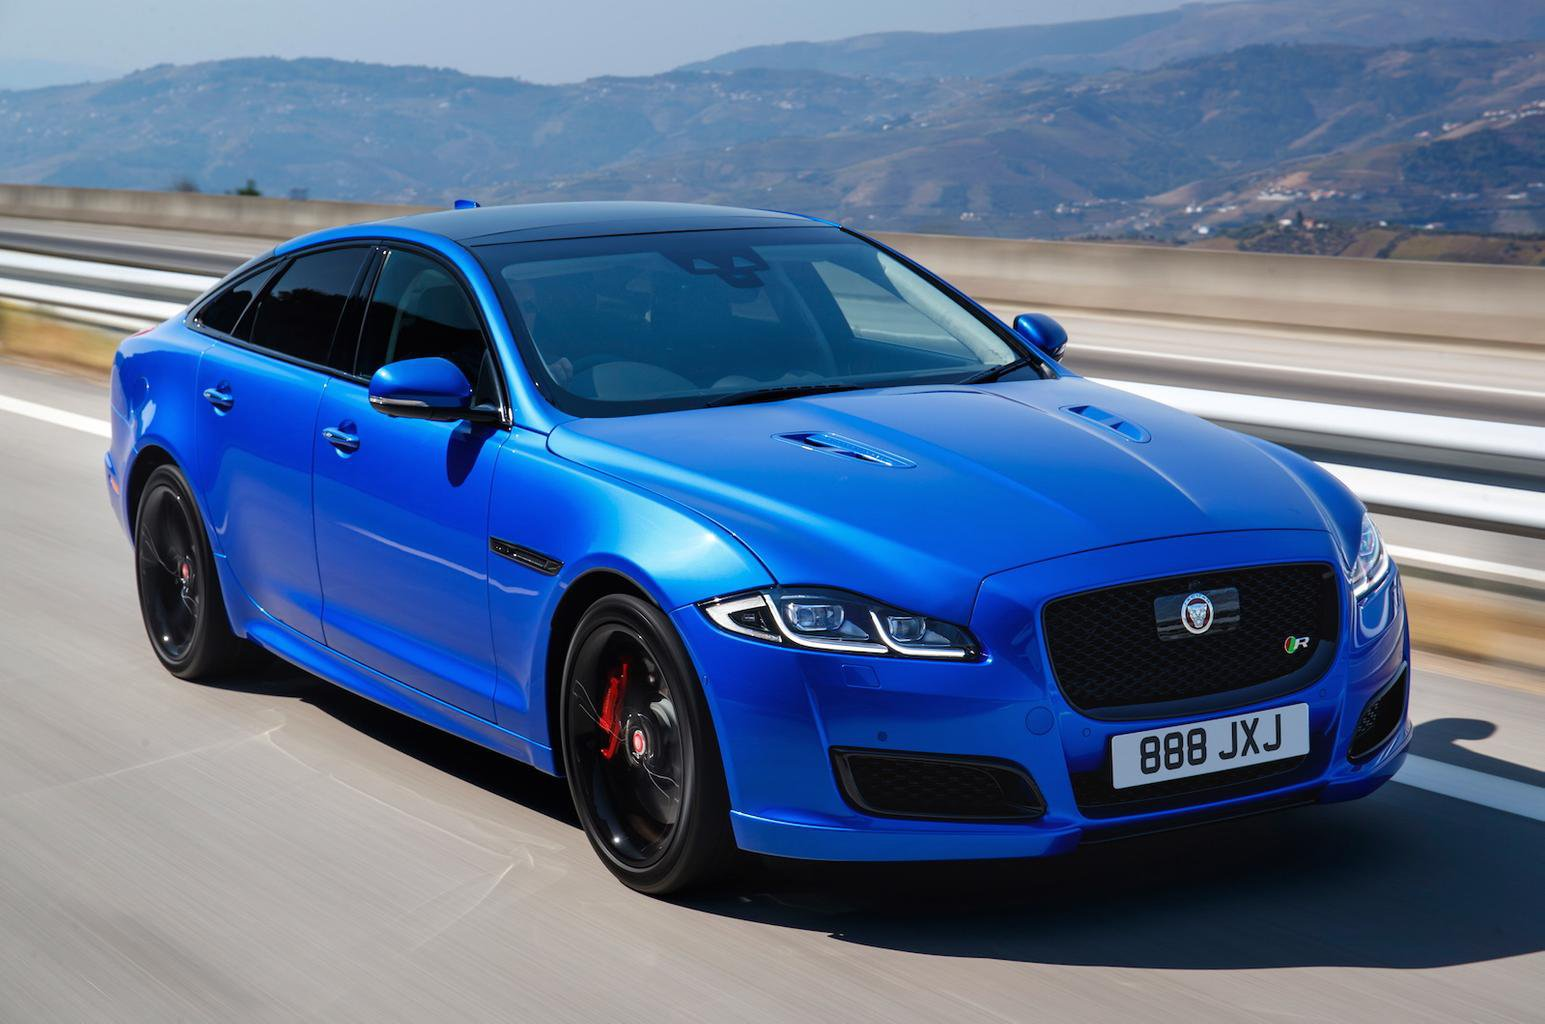 2017 Jaguar XJR 575 review - price, specs and release date